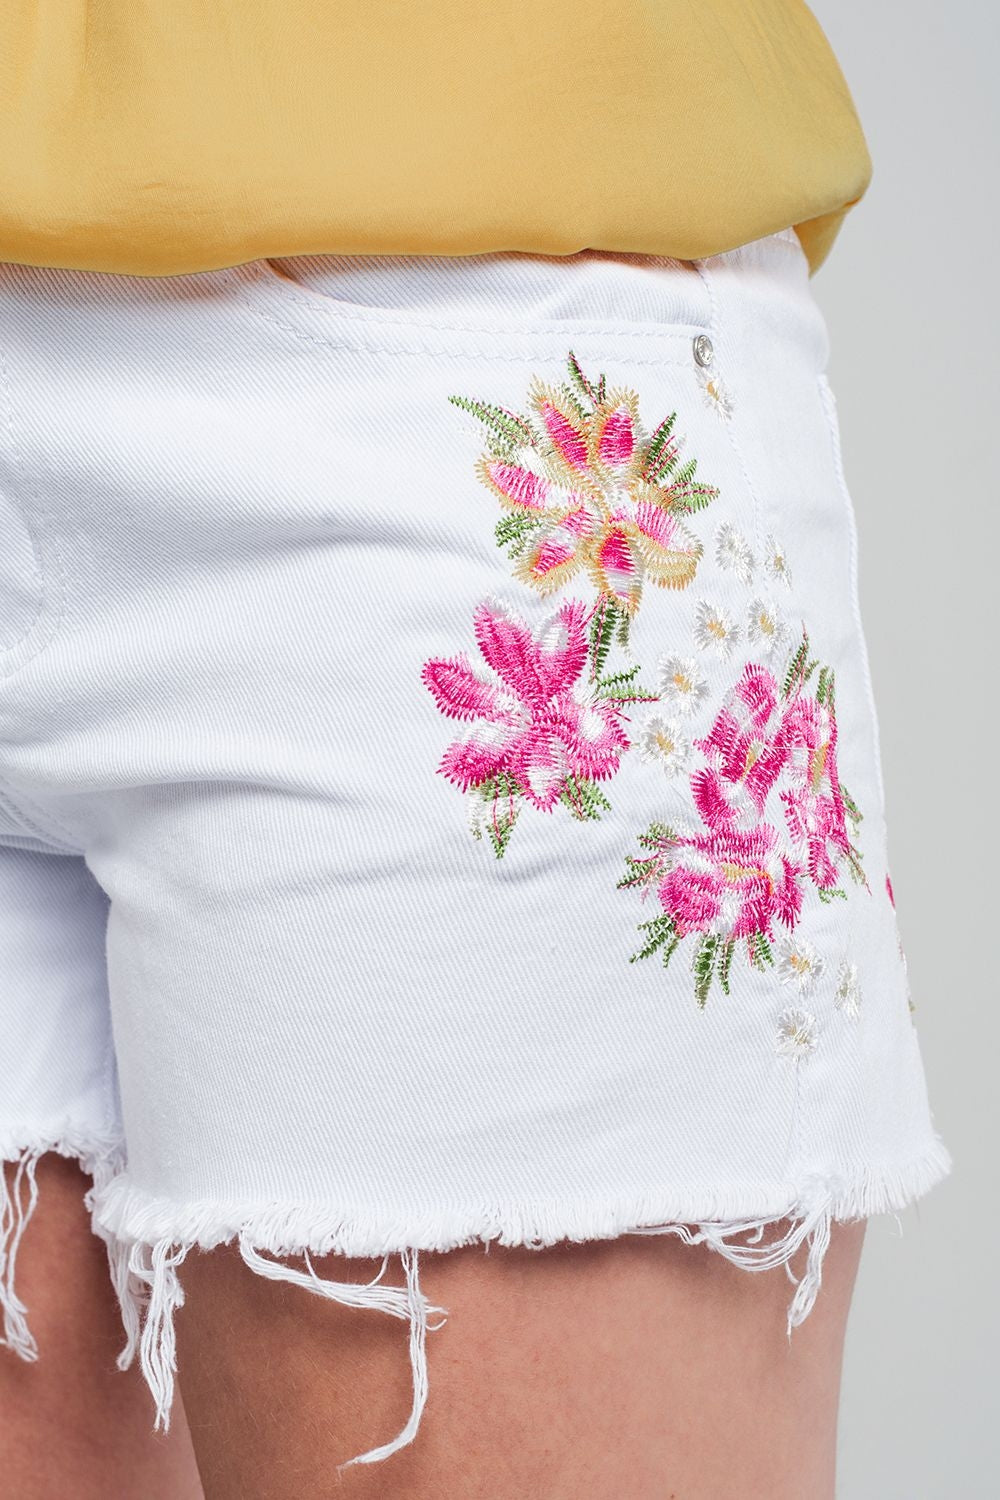 Shorts Vaqueros Color Blanco Con Flores Bordadas